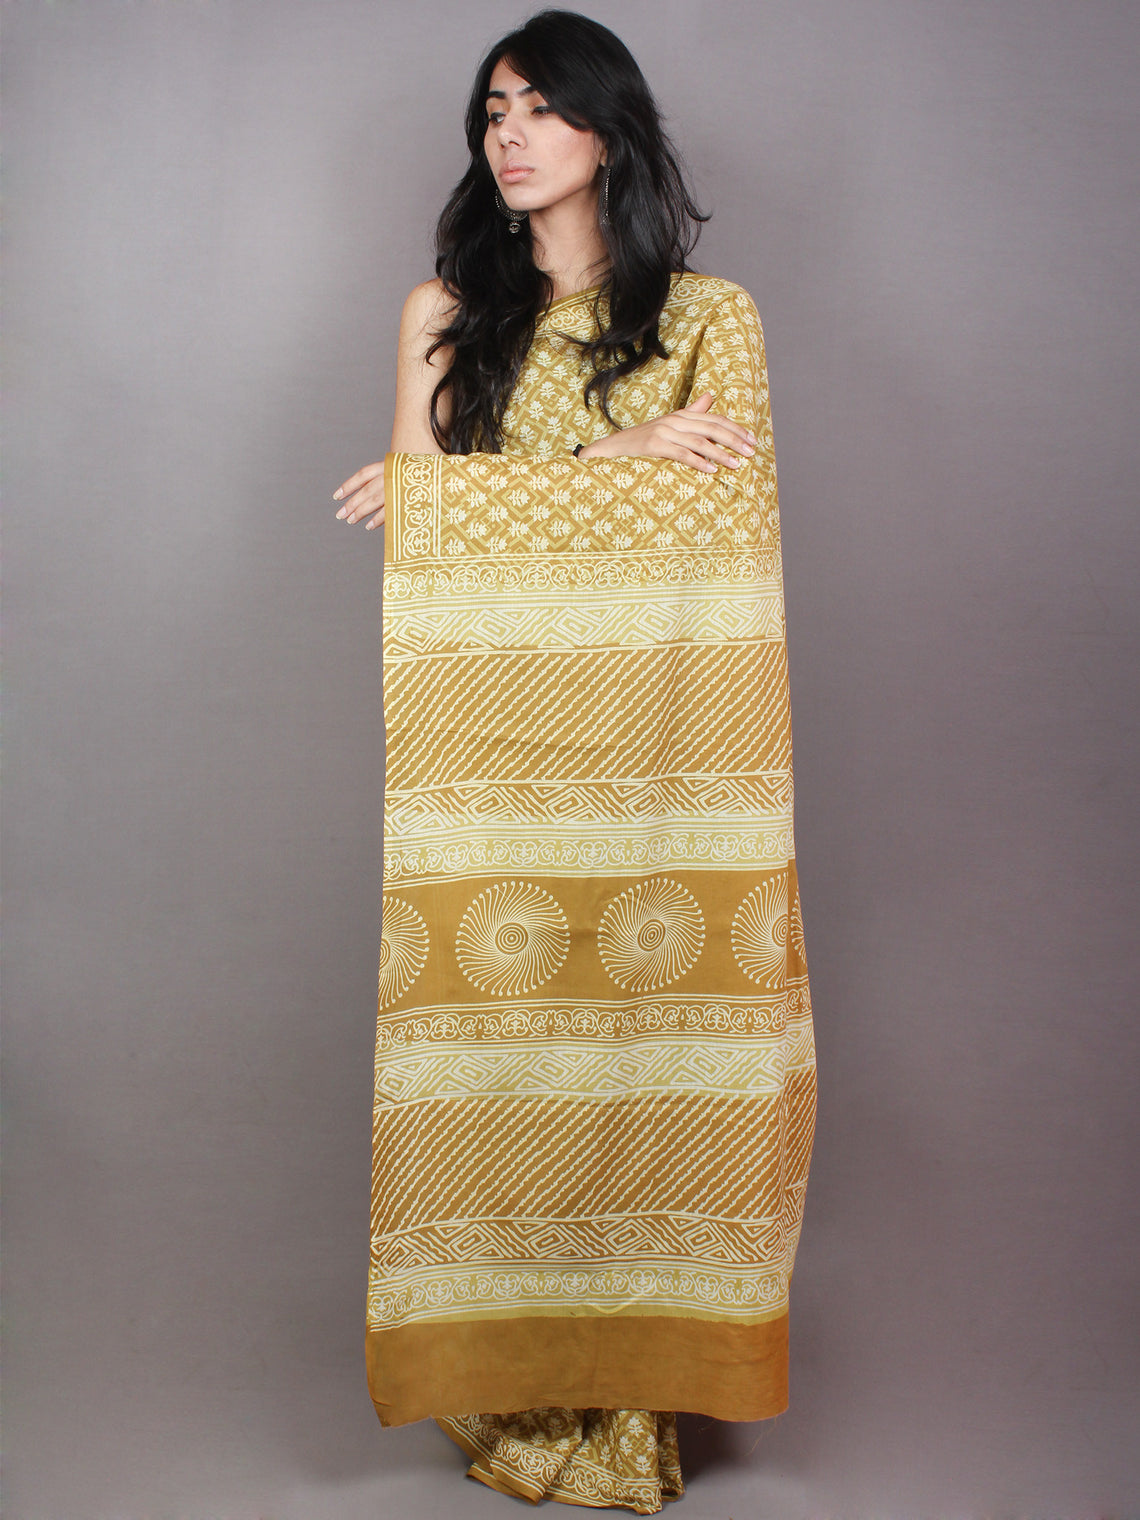 Goldenrod Yellow White Hand Block Printed in Natural Colors Cotton Mul Saree - S03170797